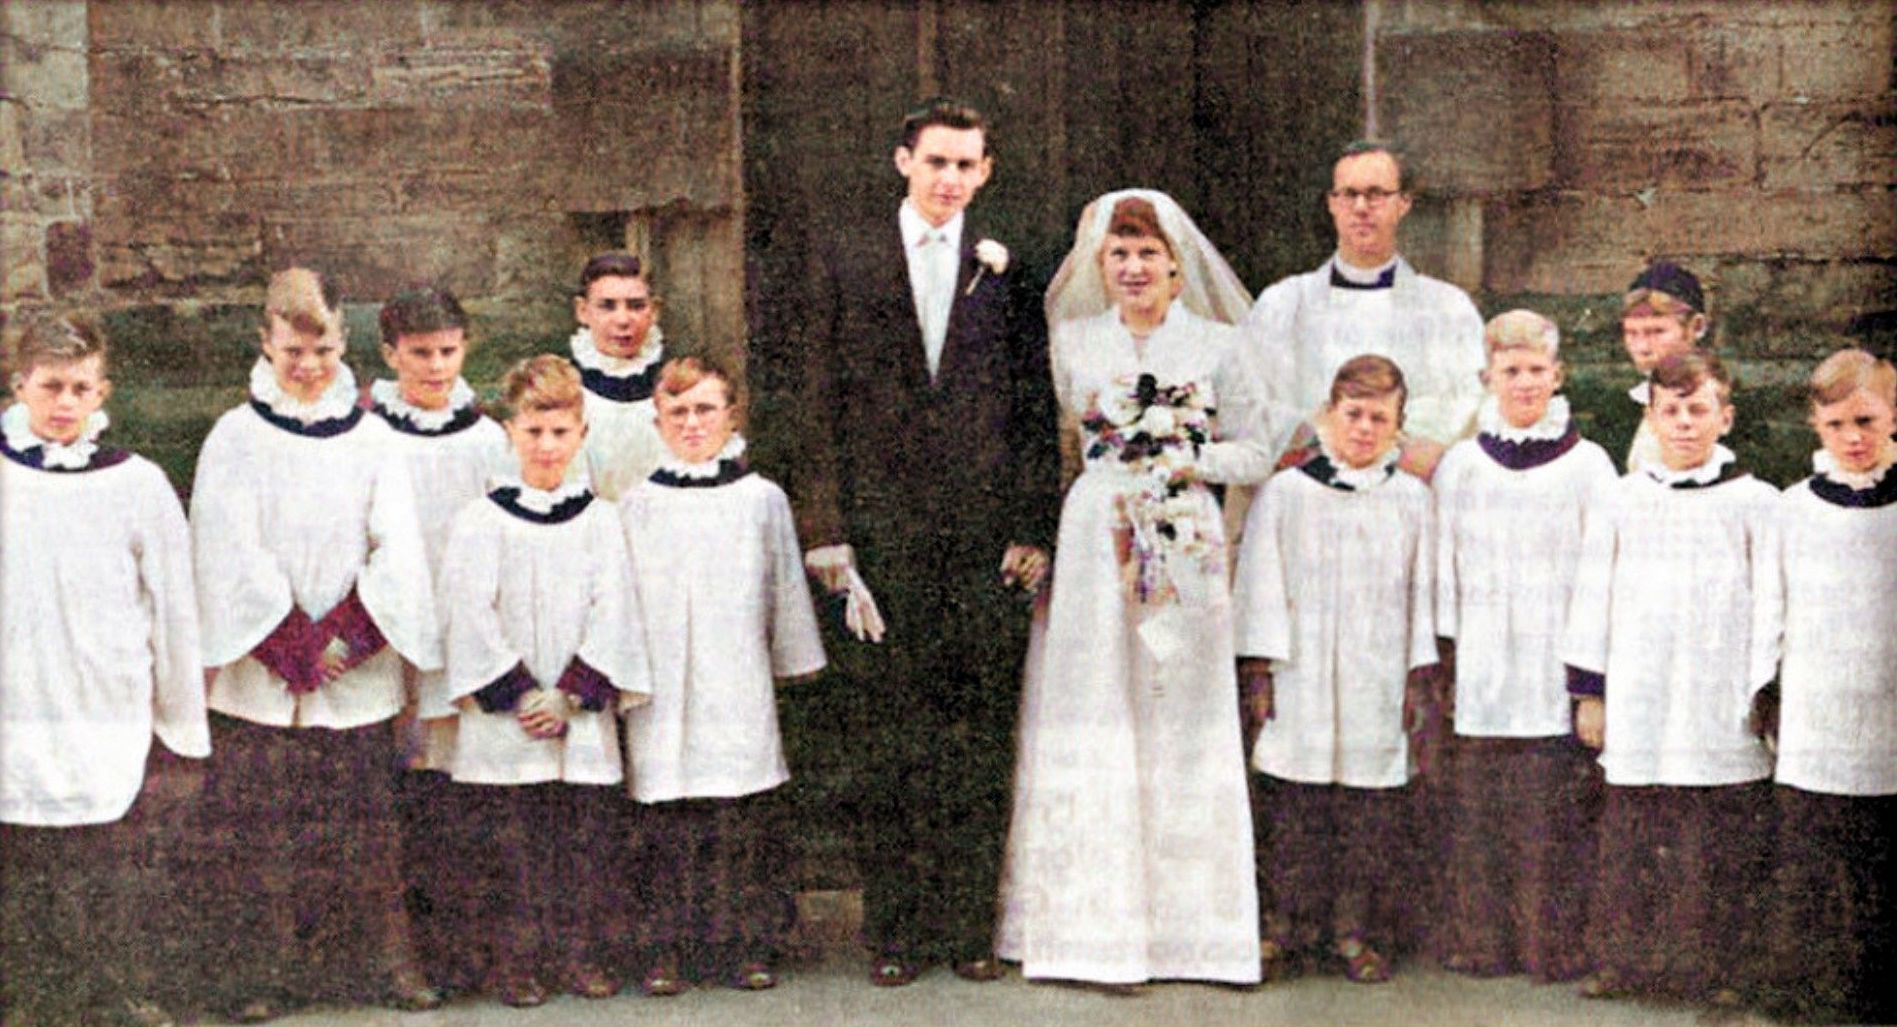 1958: Reverend Thomas Hoyle takes a wedding service.